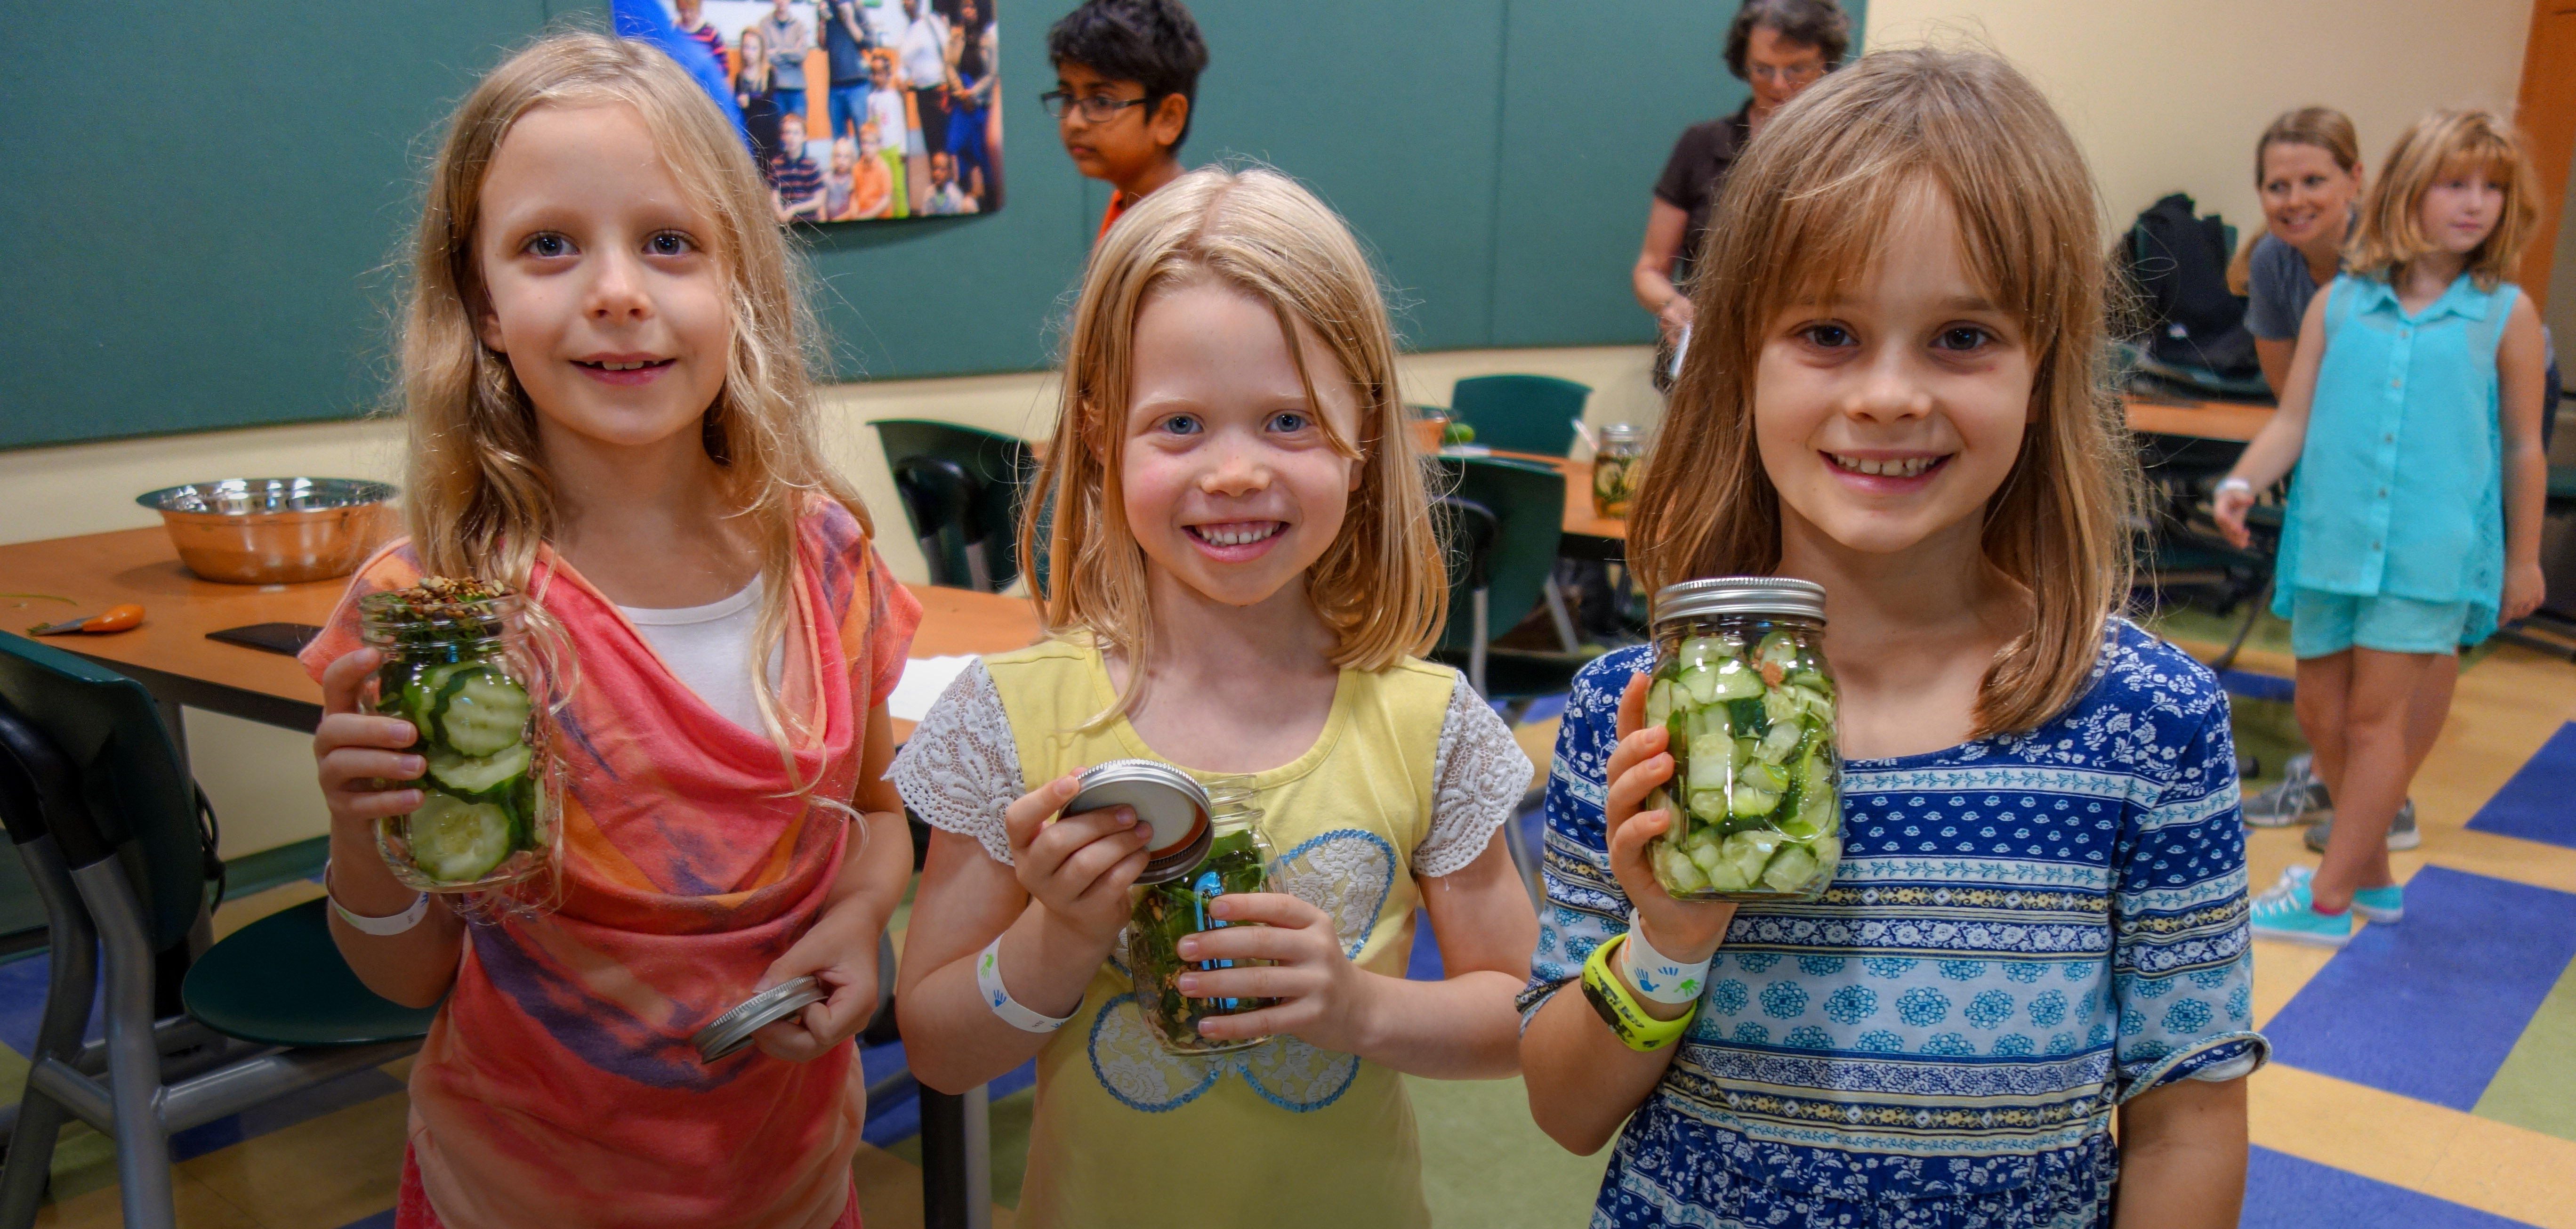 Three girl scouts smiling and holding jars with their science experiment. Programs for Scouts